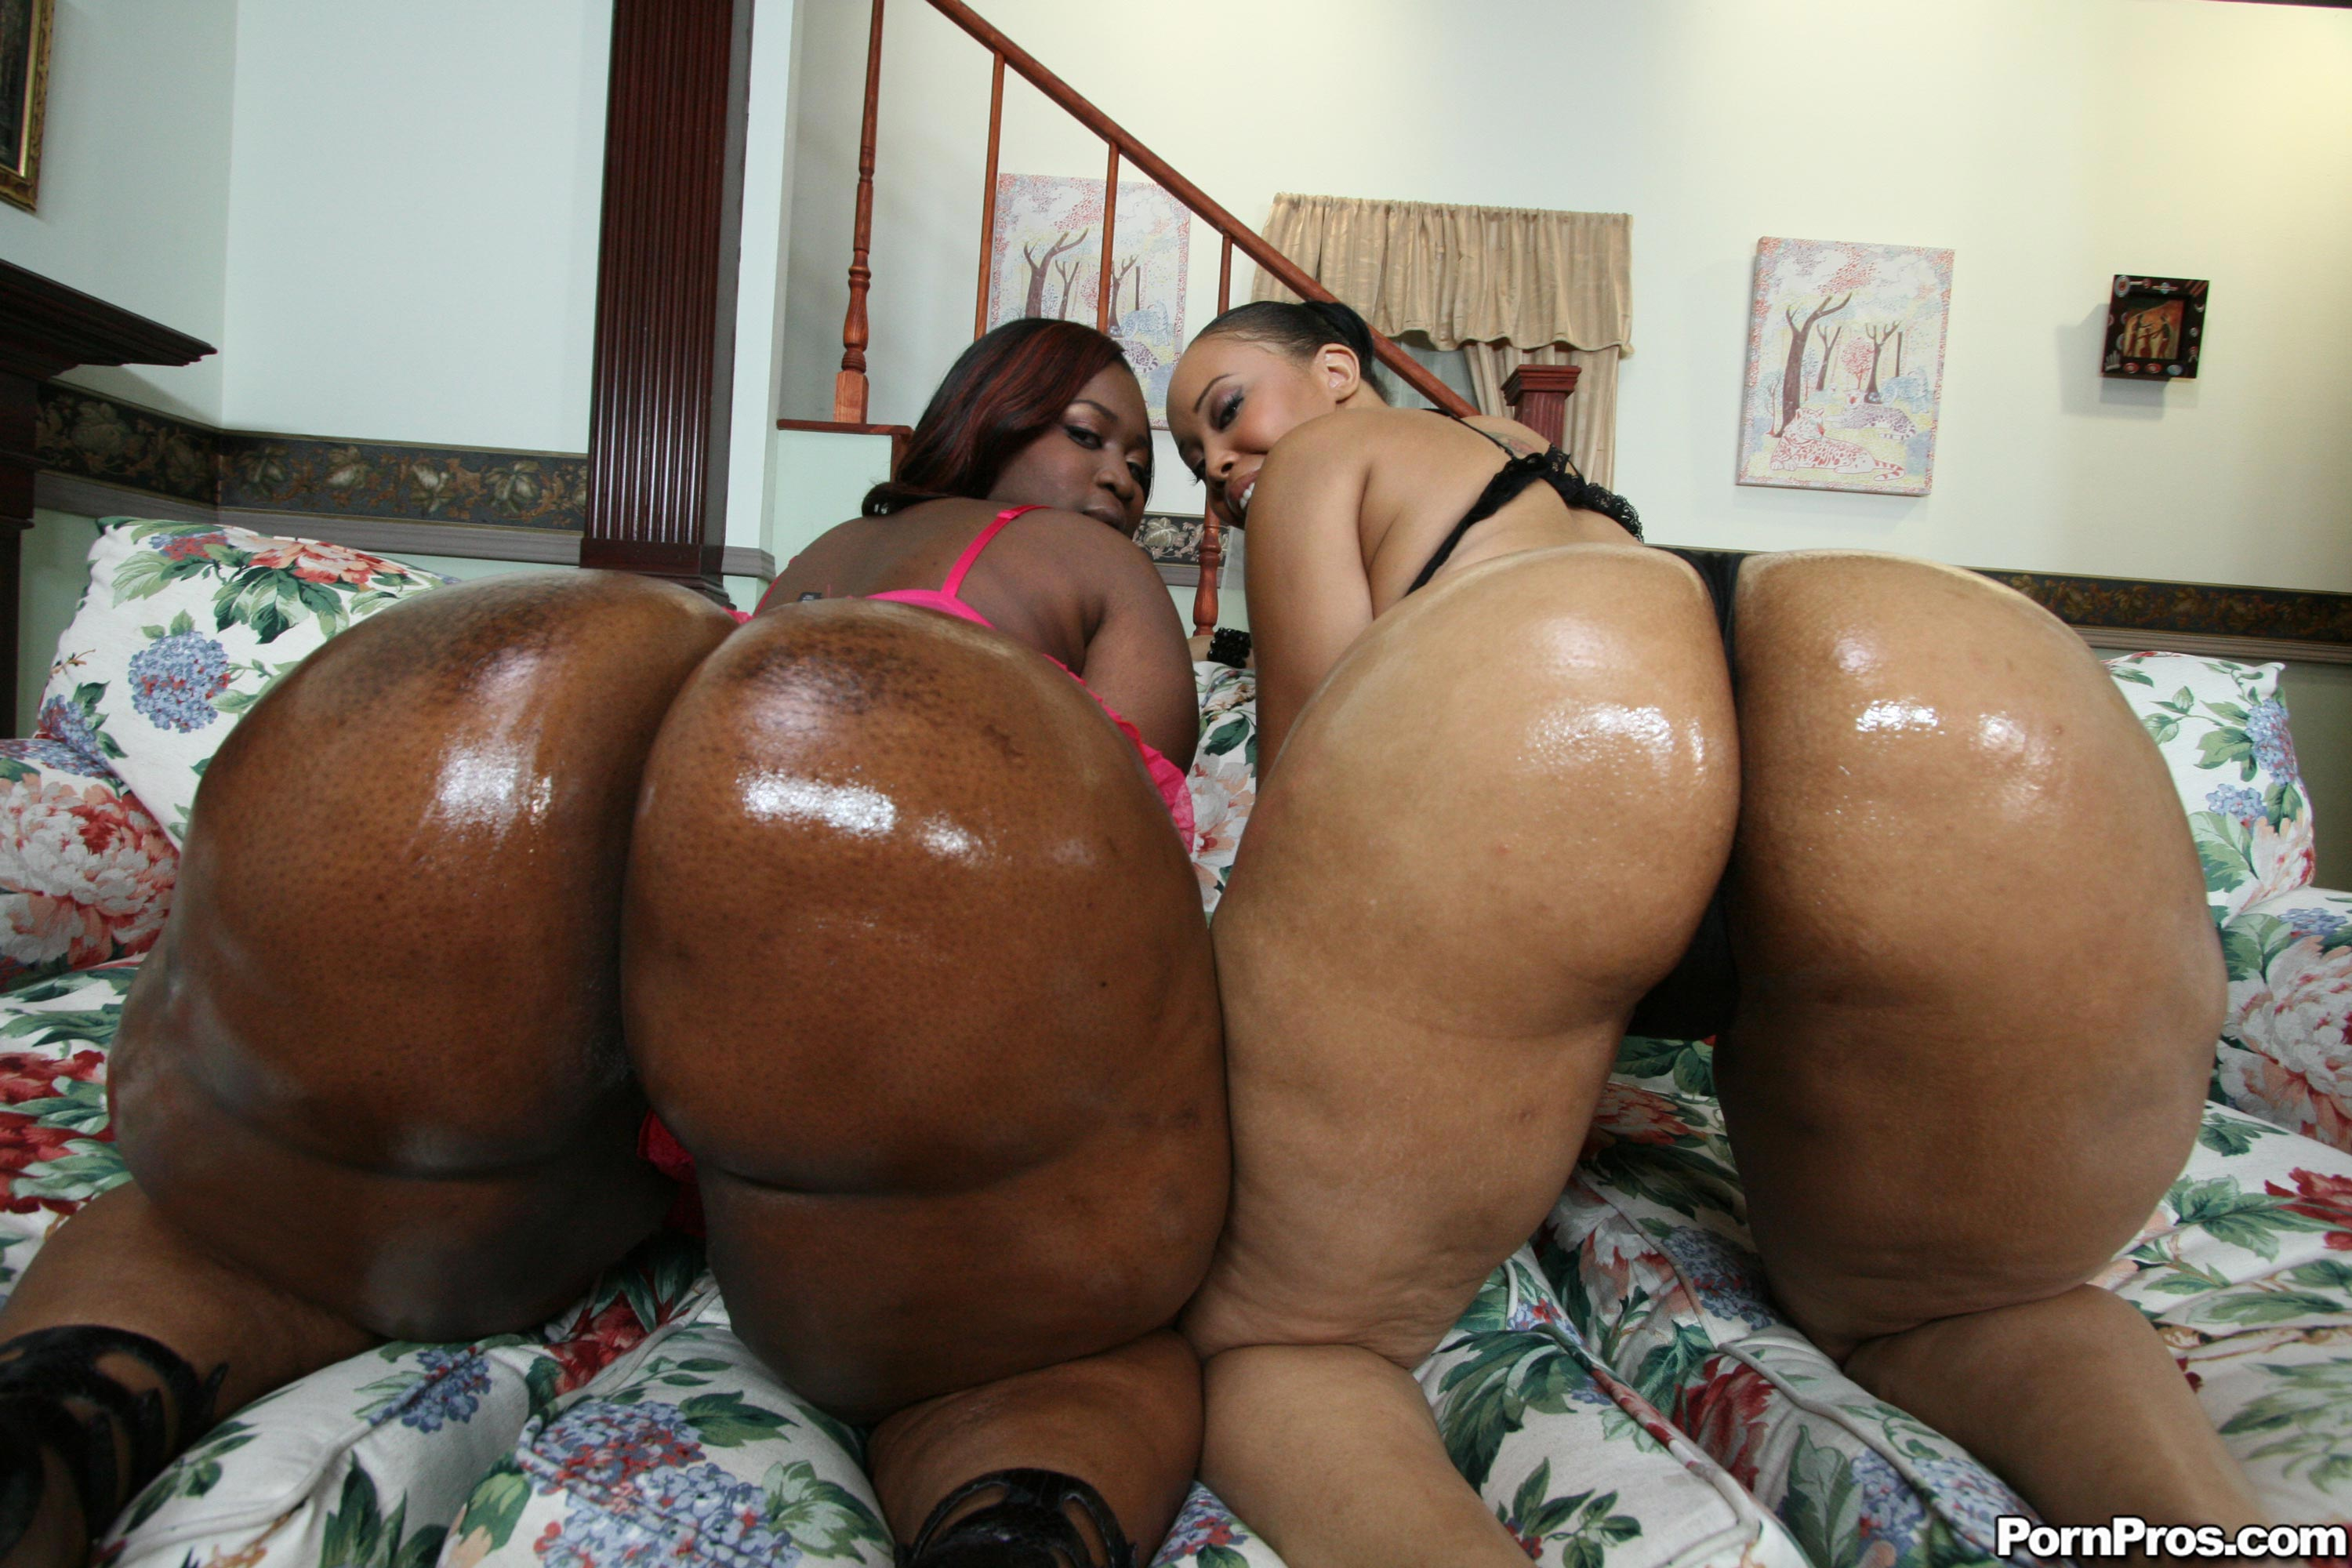 Sexy big booty ebony bbw with fade